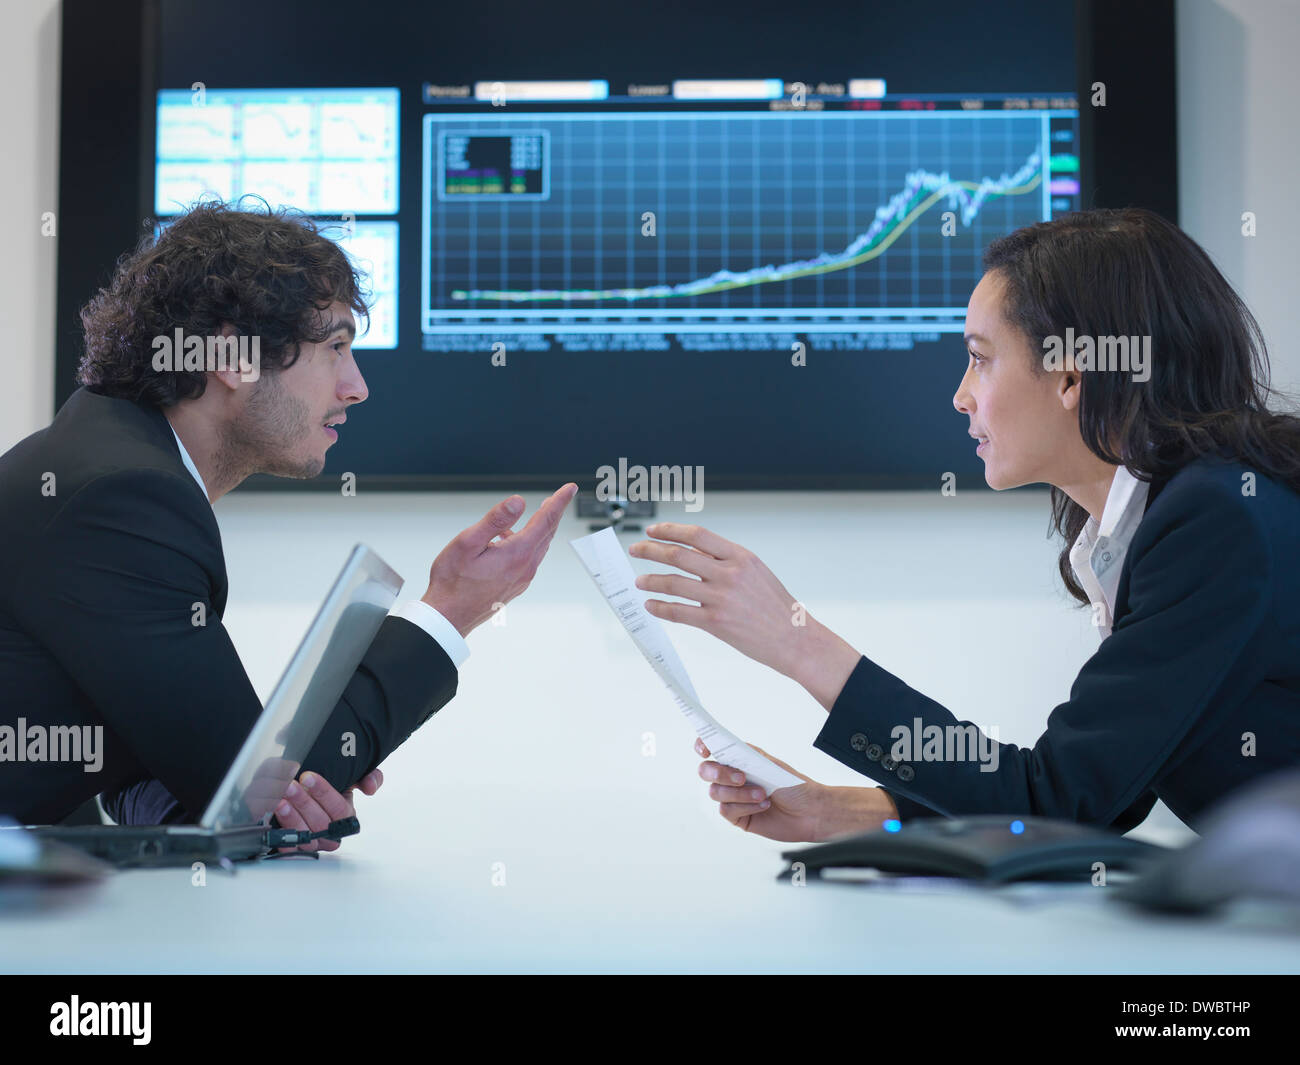 Business colleagues in meeting in front of screen in office - Stock Image